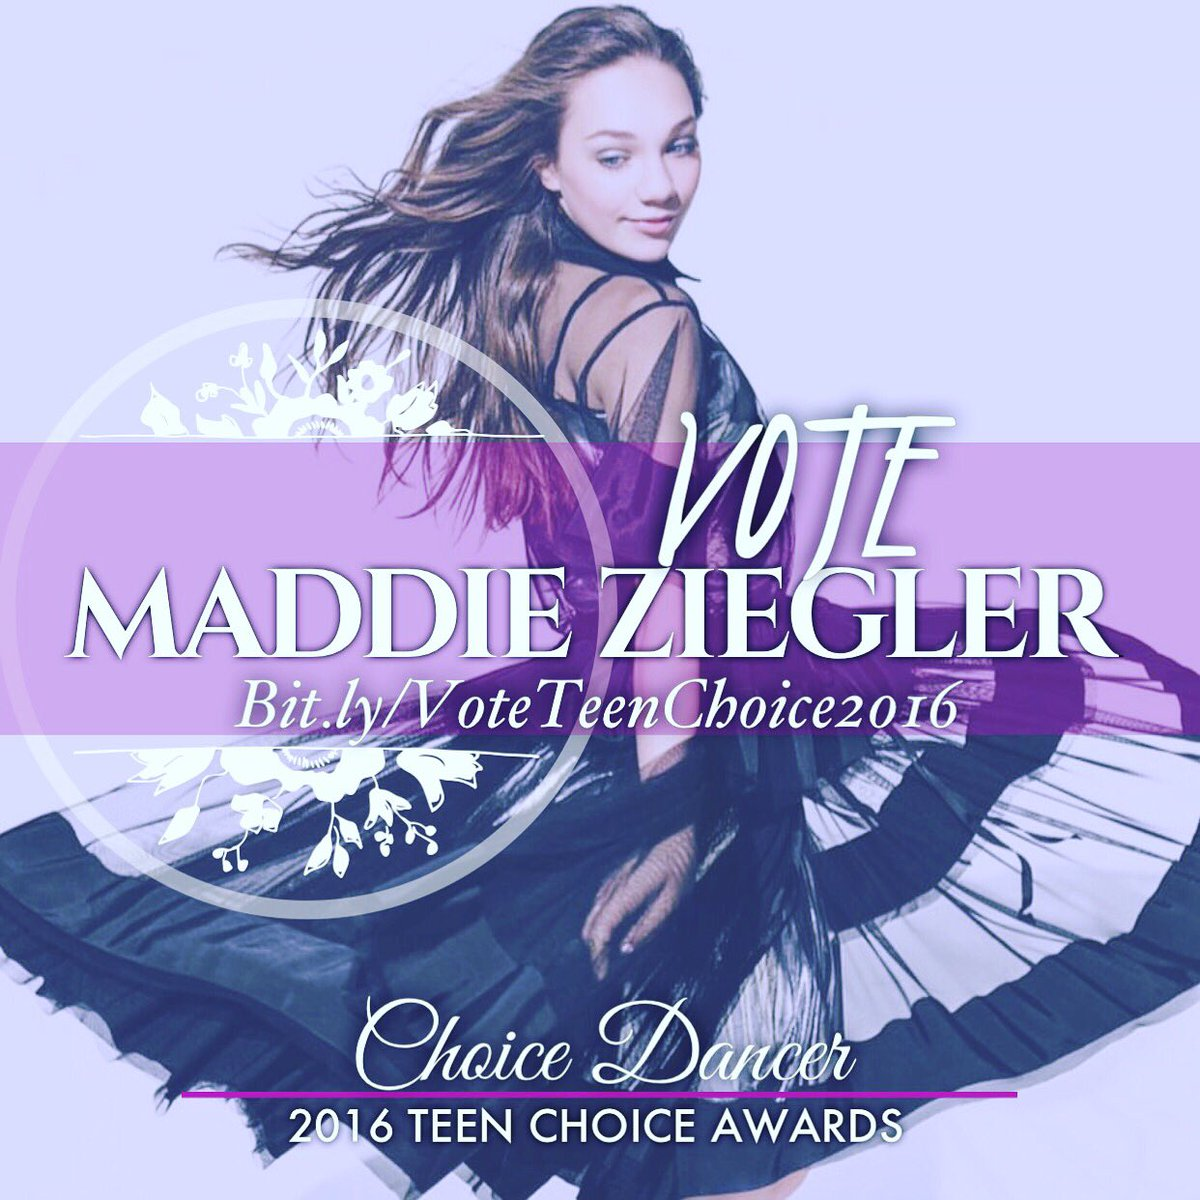 Thank you for nominating @MaddieZiegler for #ChoiceDancer @TeenChoiceFOX! Click the link in my bio to vote! https://t.co/StTnfyOW5g